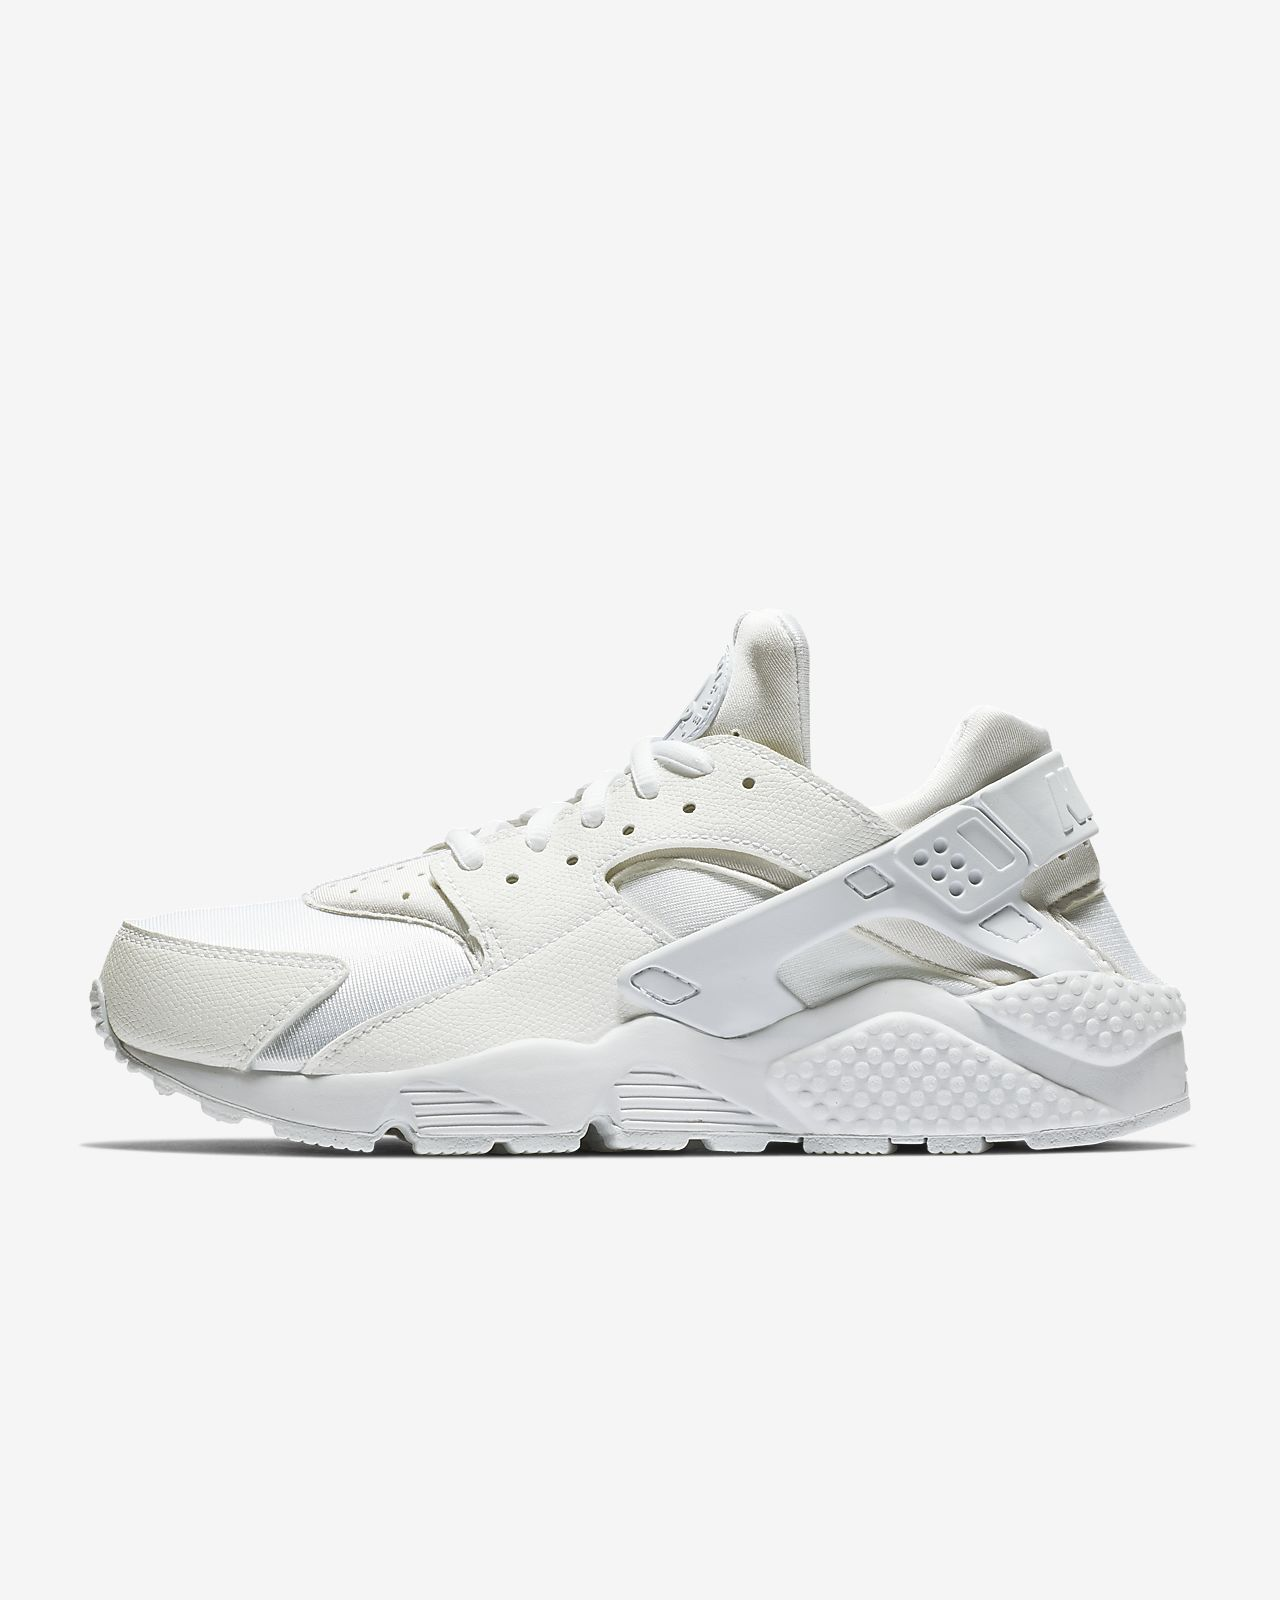 new style 48093 babc1 Nike Air Huarache Women's Shoe